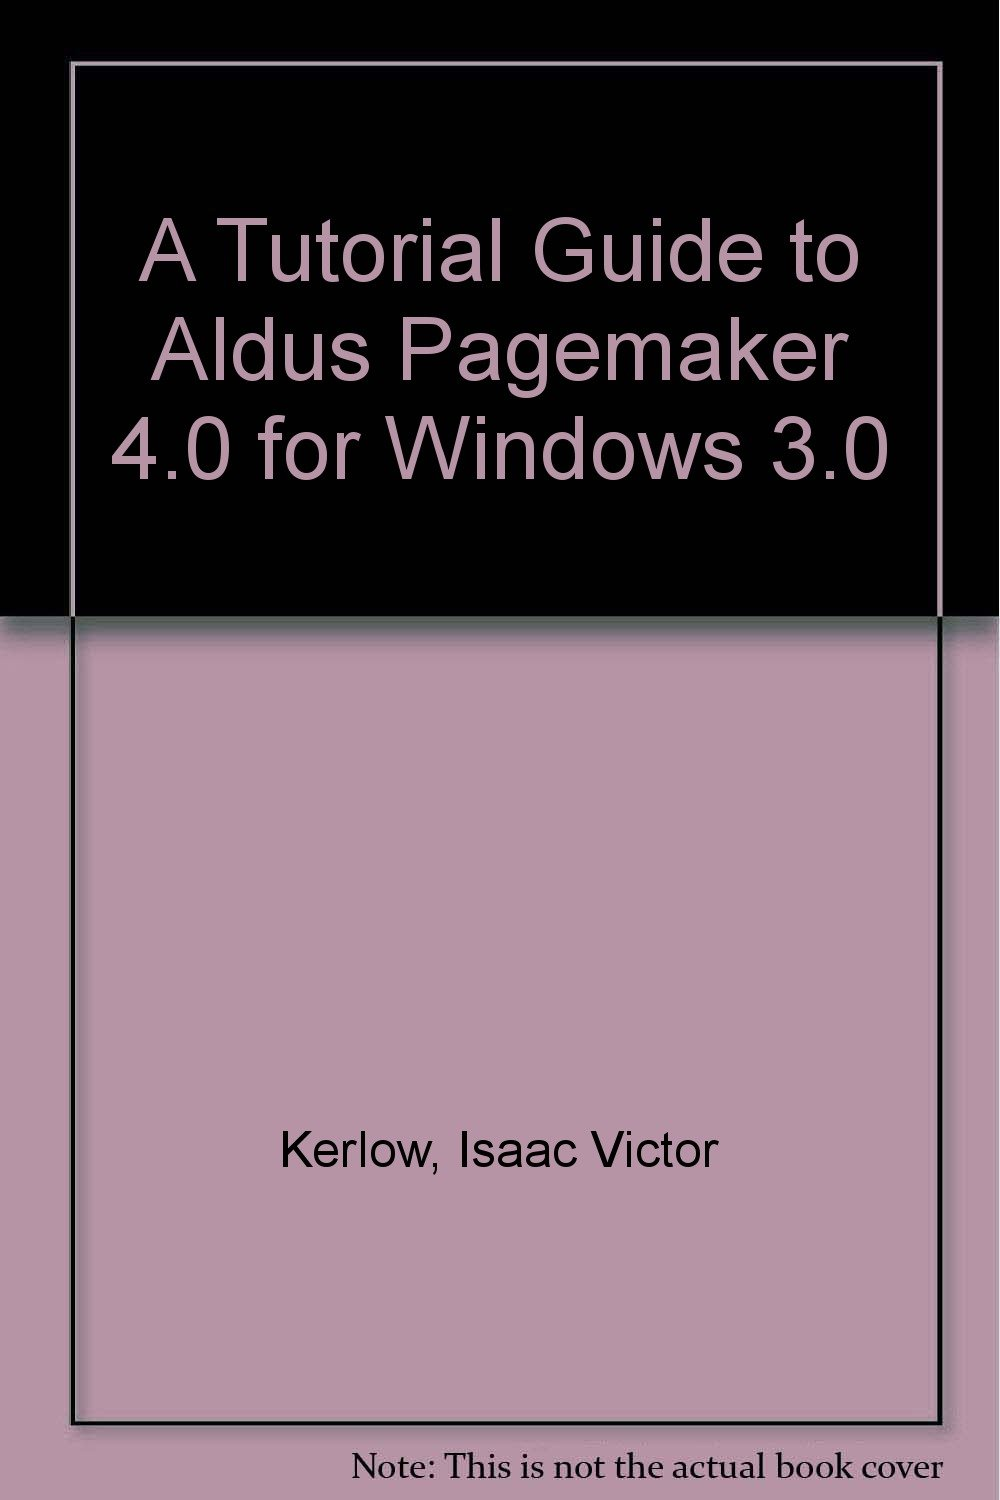 Tutorial guide to aldus pagemaker 40 for windows 30book and tutorial guide to aldus pagemaker 40 for windows 30book and disk isaac victor kerlow 9780201506563 amazon books baditri Gallery